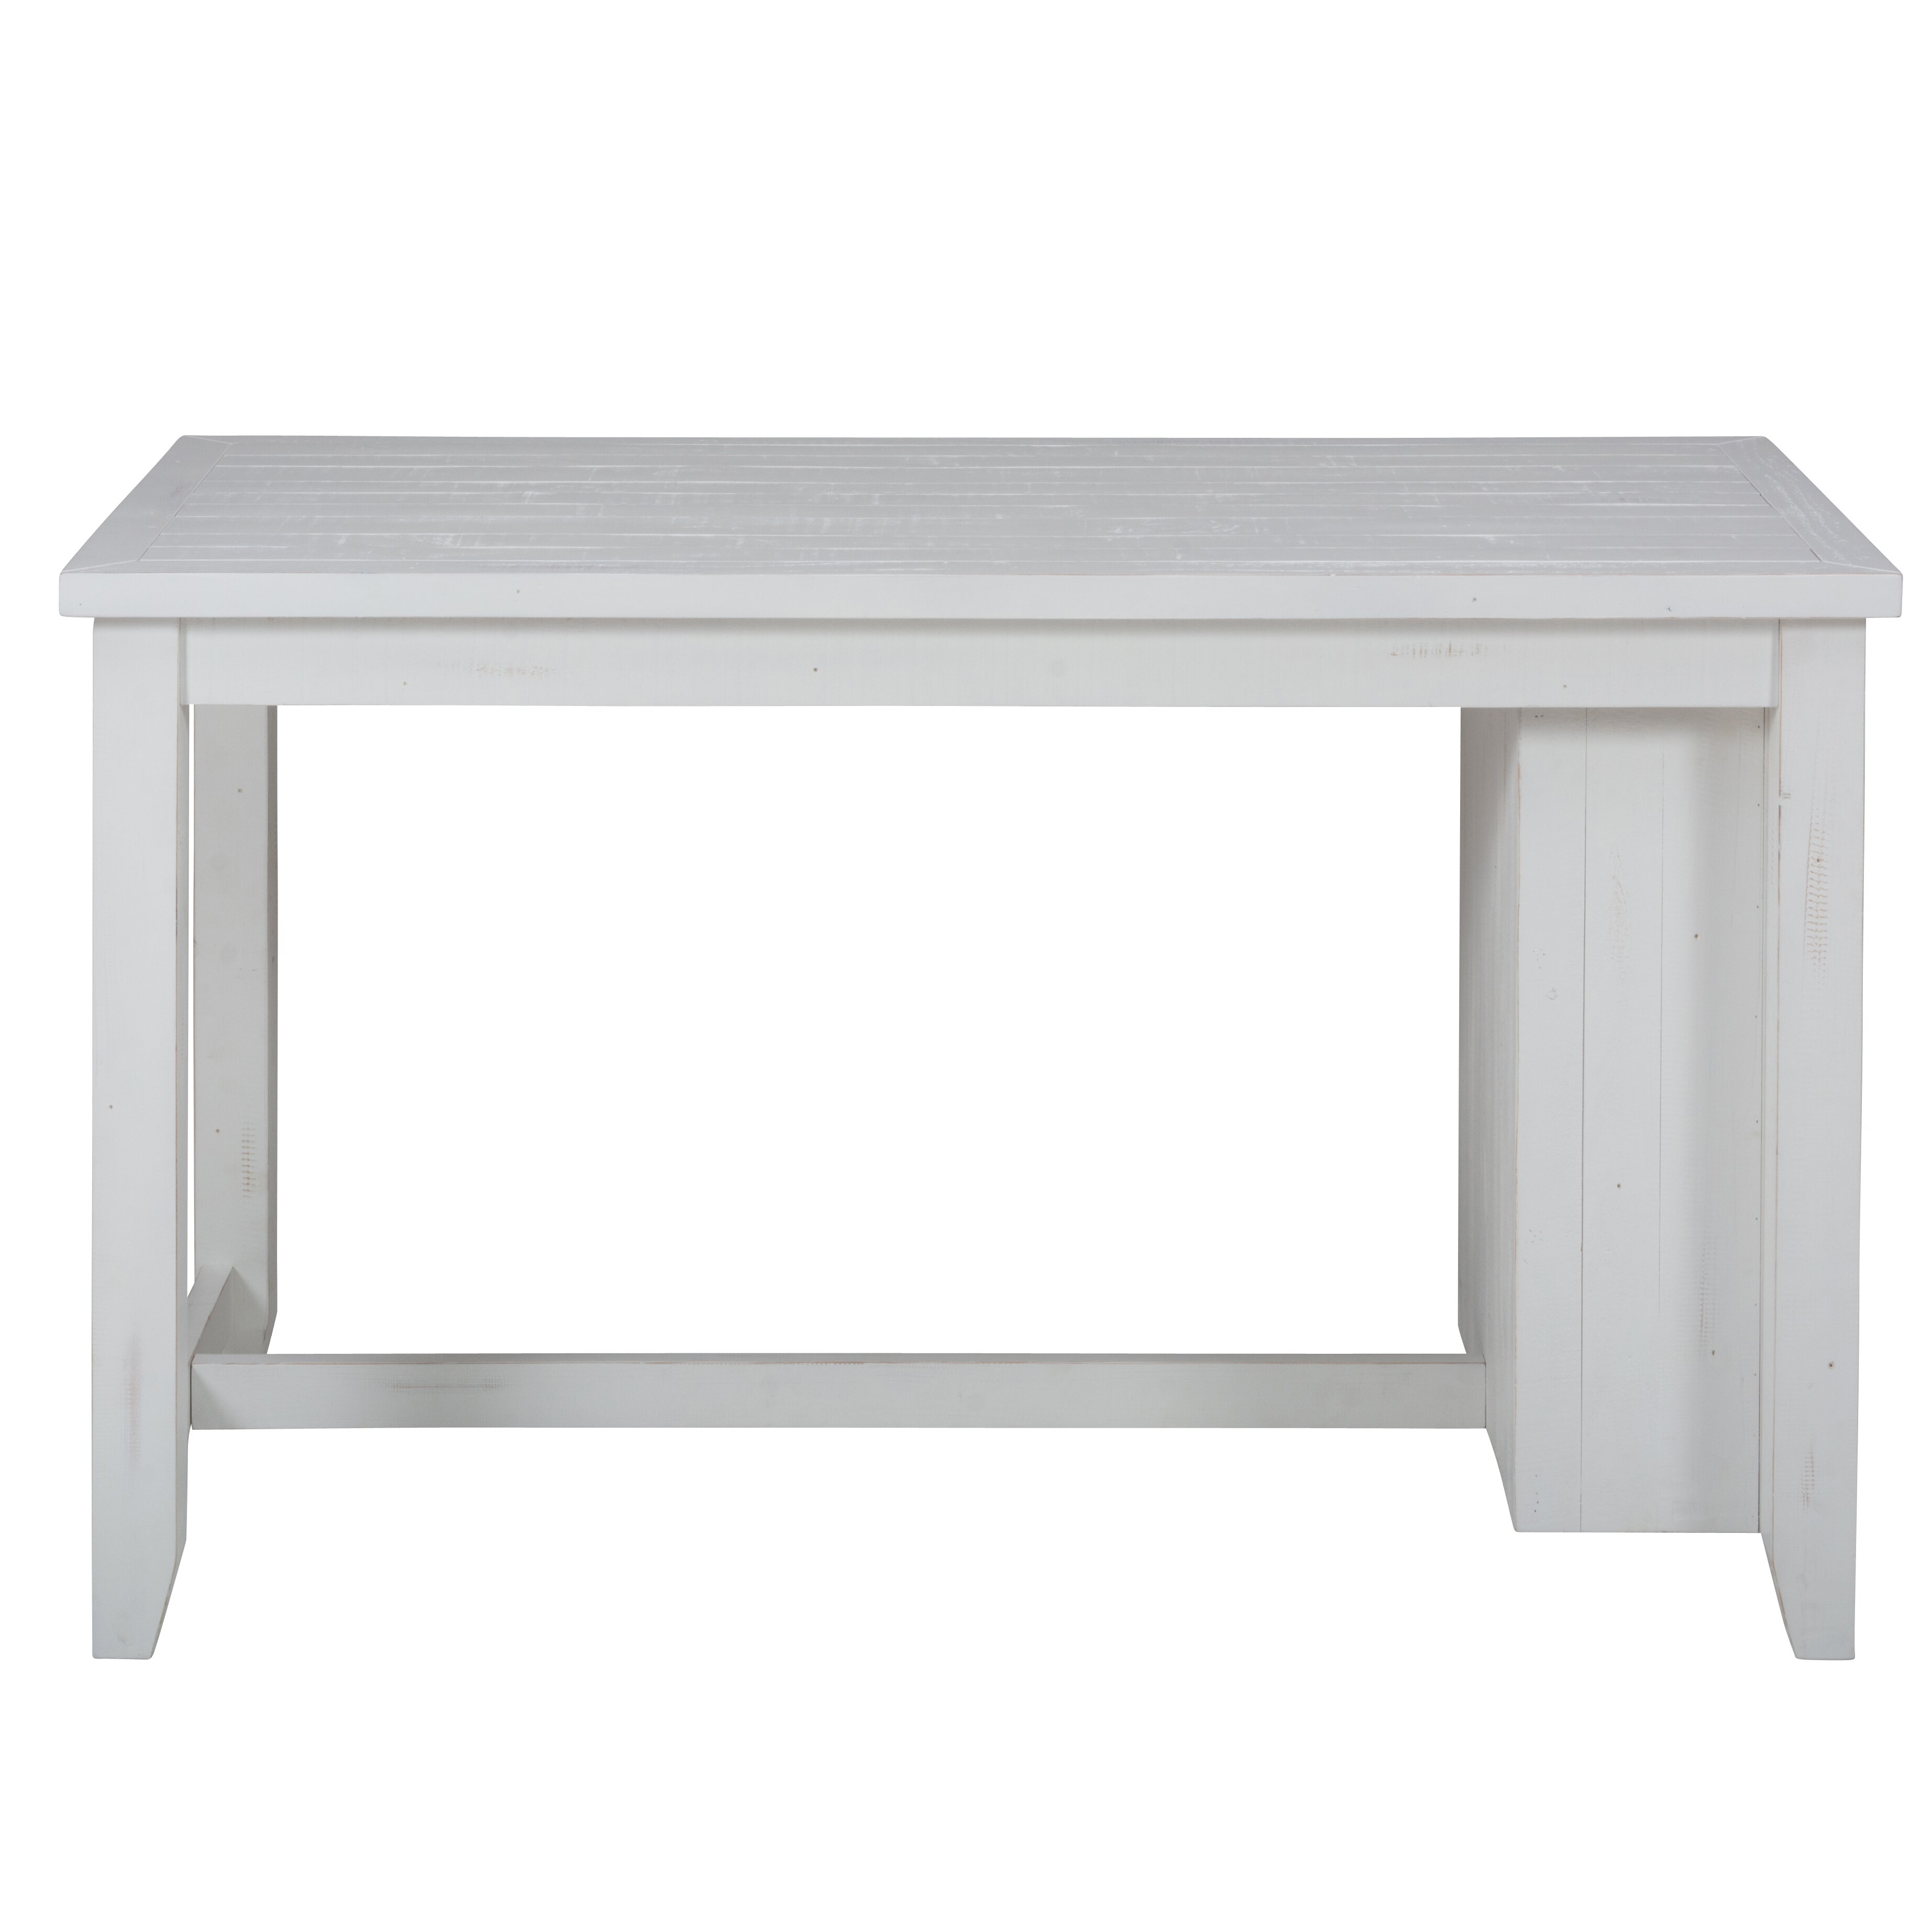 Jofran Chadwick Counter Height Table With Corner Bench And: Jofran Madaket Counter Height Dining Table & Reviews